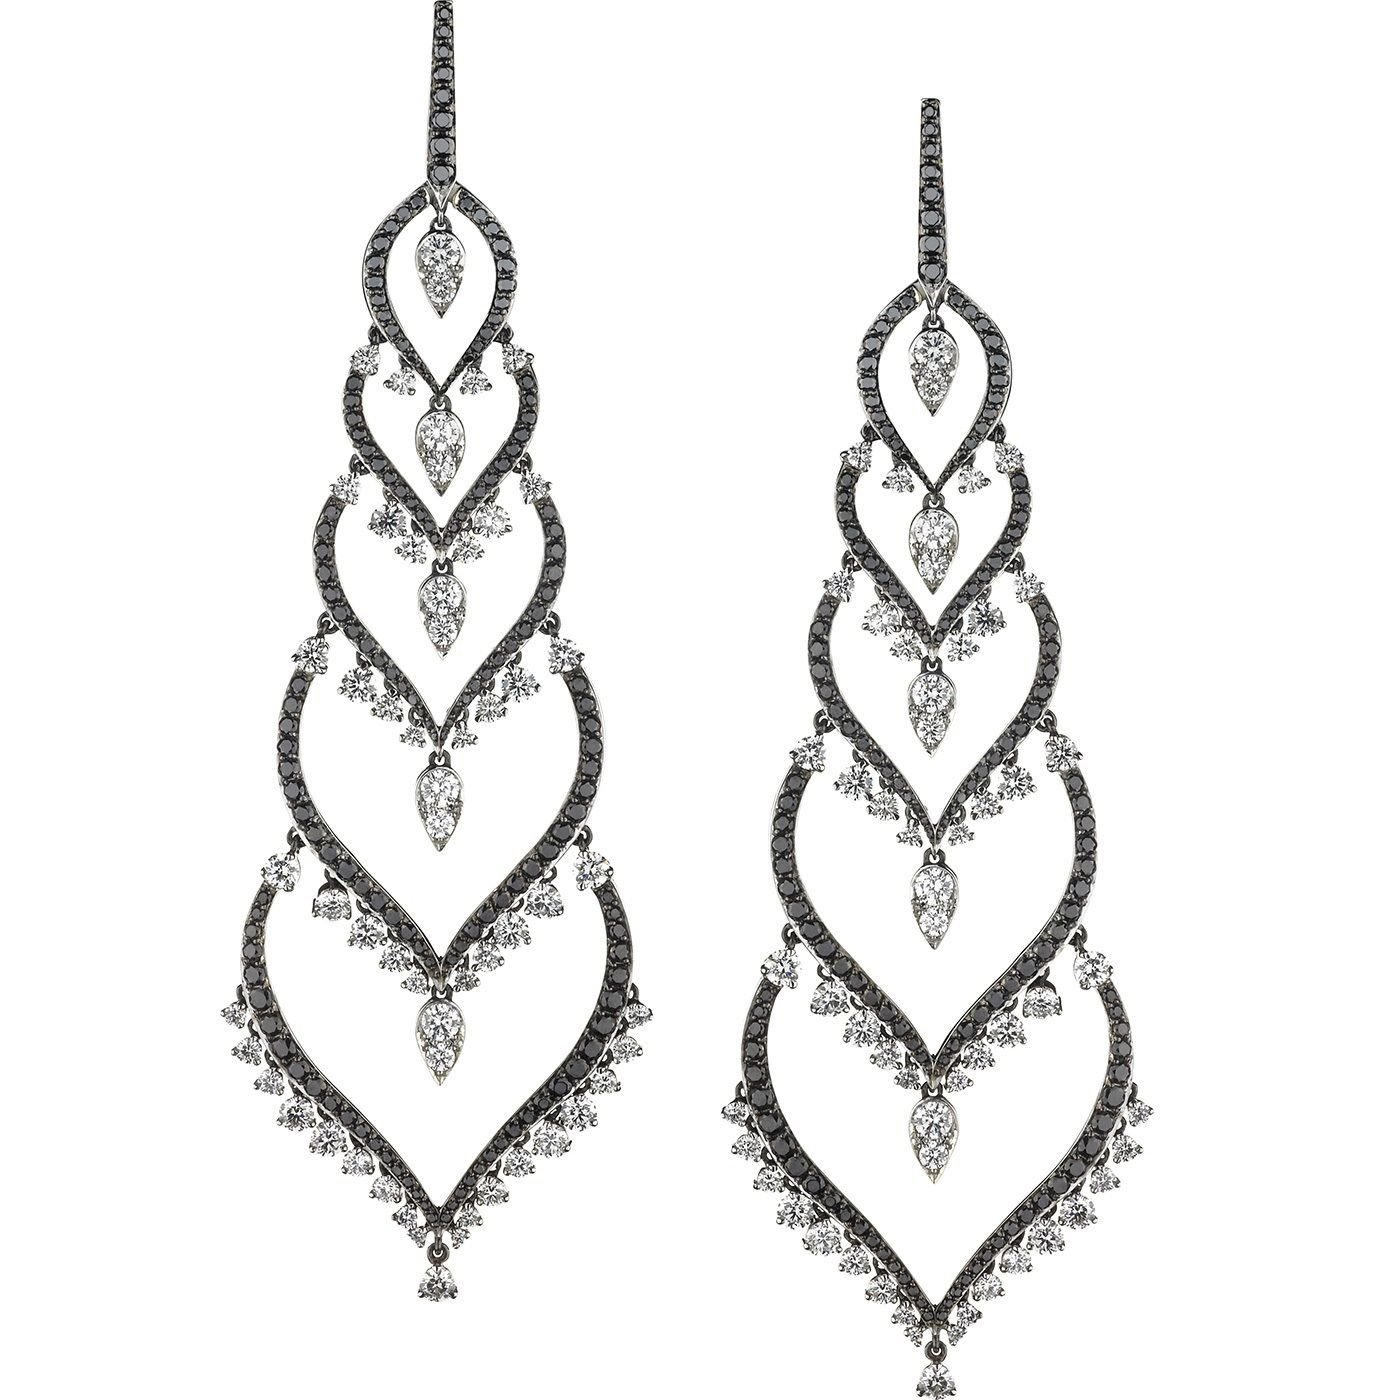 RUSSIA EARRINGS Couture Voyage 18k white gold, black and white diamonds